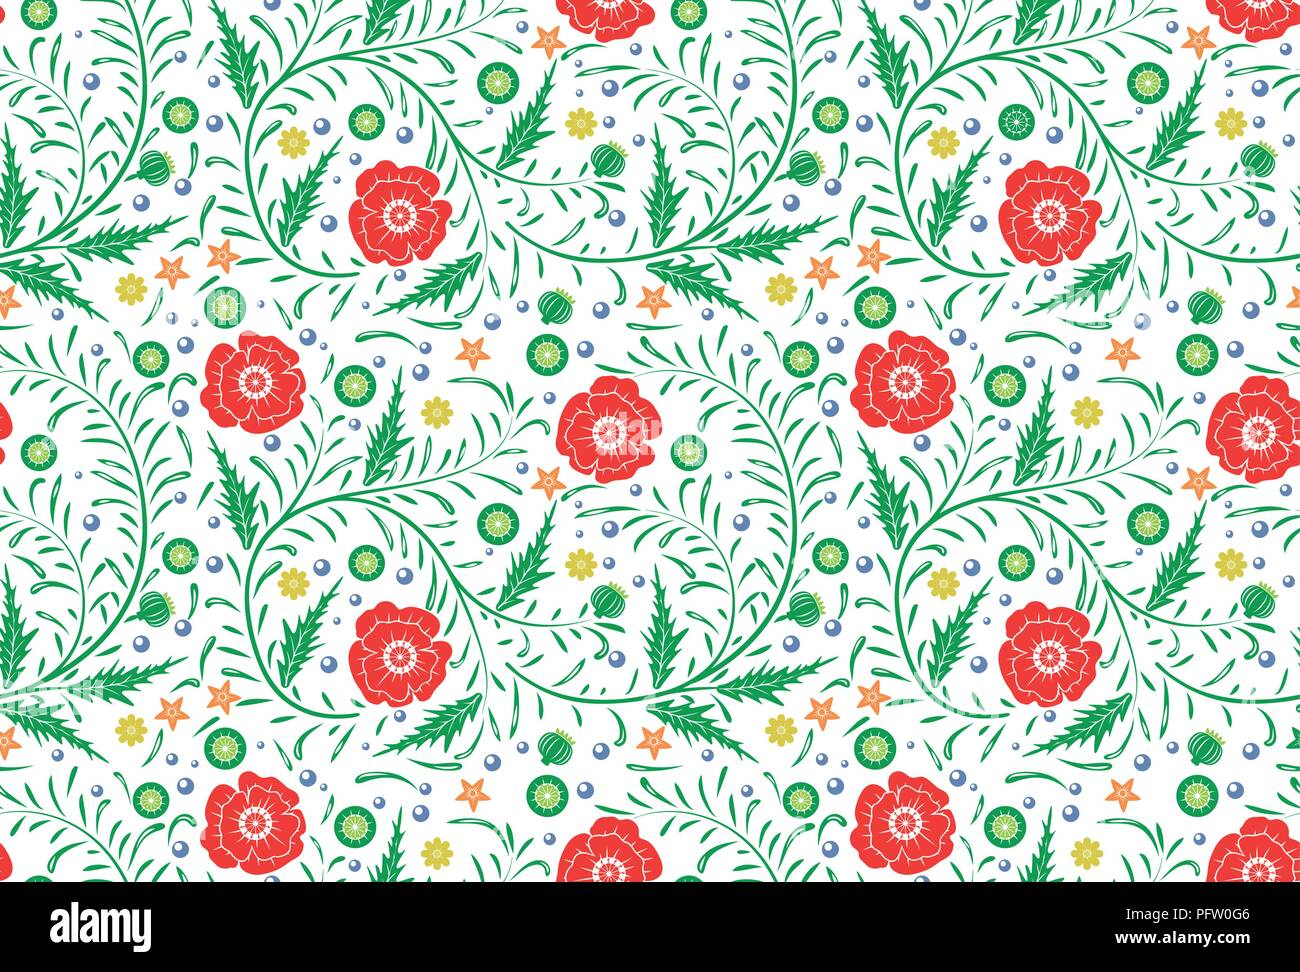 Vector Seamless floral pattern design hand drawn: garden white, red poppies with green leaves. Perfect background - Stock Vector